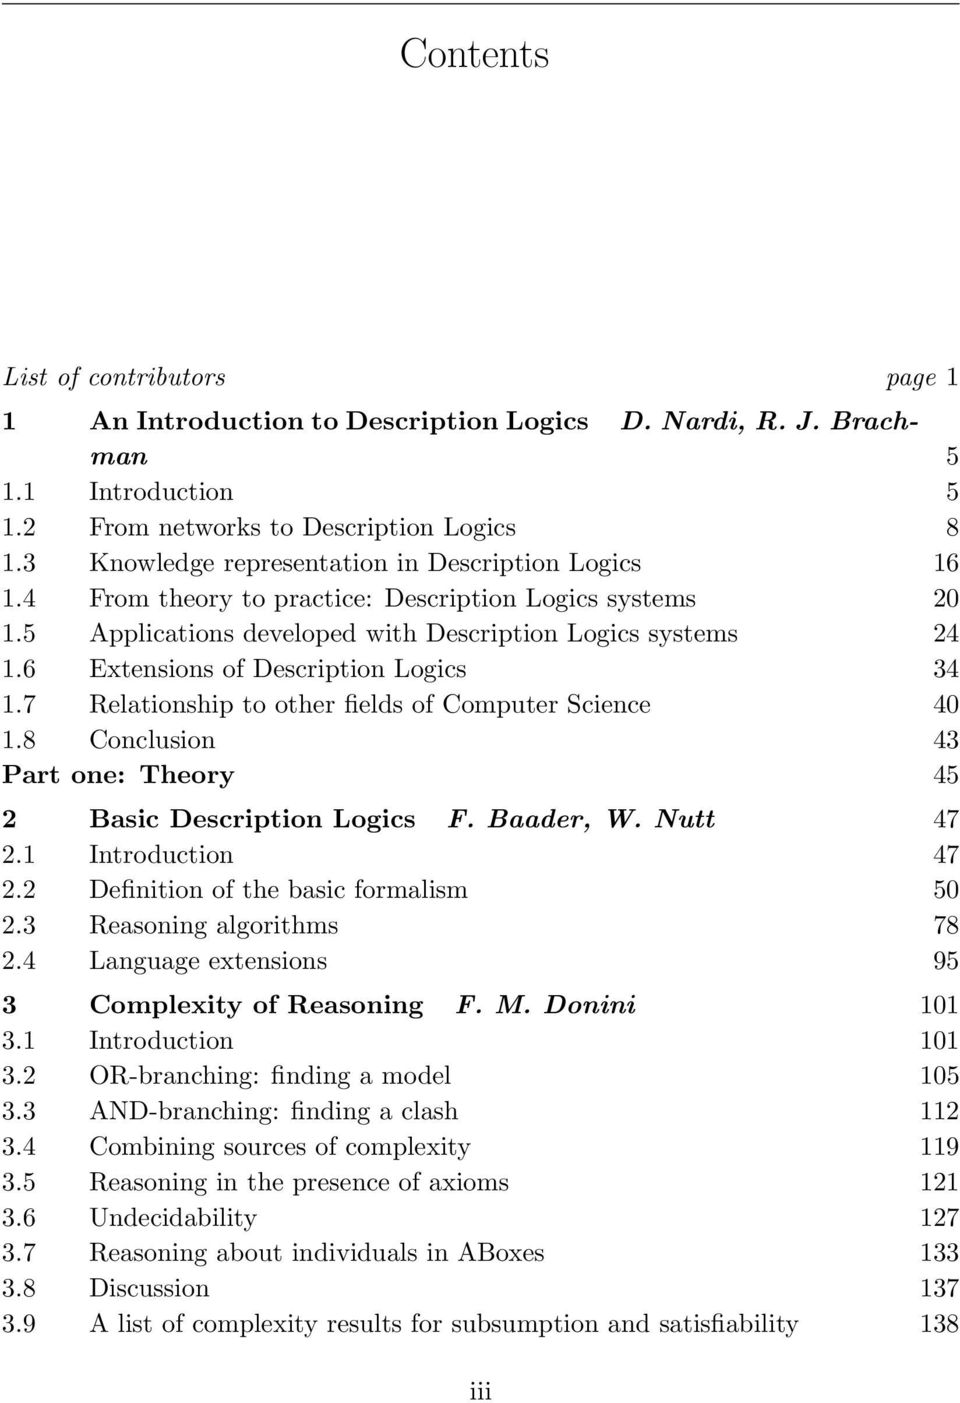 6 Extensions of Description Logics 34 1.7 Relationship to other fields of Computer Science 40 1.8 Conclusion 43 Part one: Theory 45 2 Basic Description Logics F. Baader, W. Nutt 47 2.